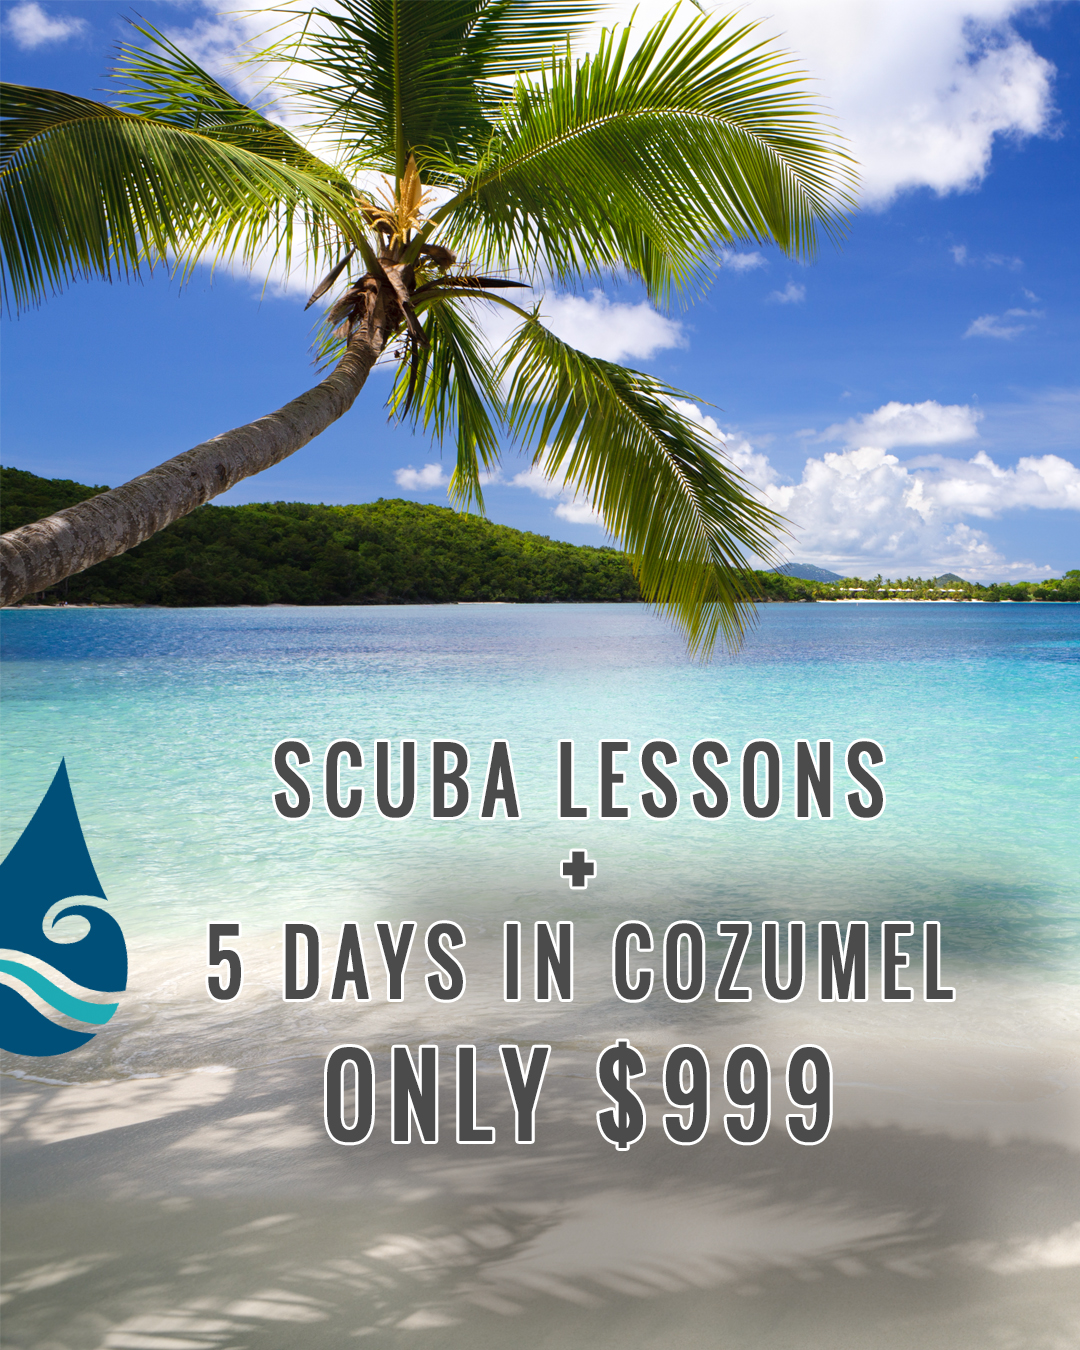 That's right! Our May Cozumel trip, plus your complete   Open Water Course   with   student materials   included for only $999. Call us to sign up: 719-599-3483. Limited spots available.